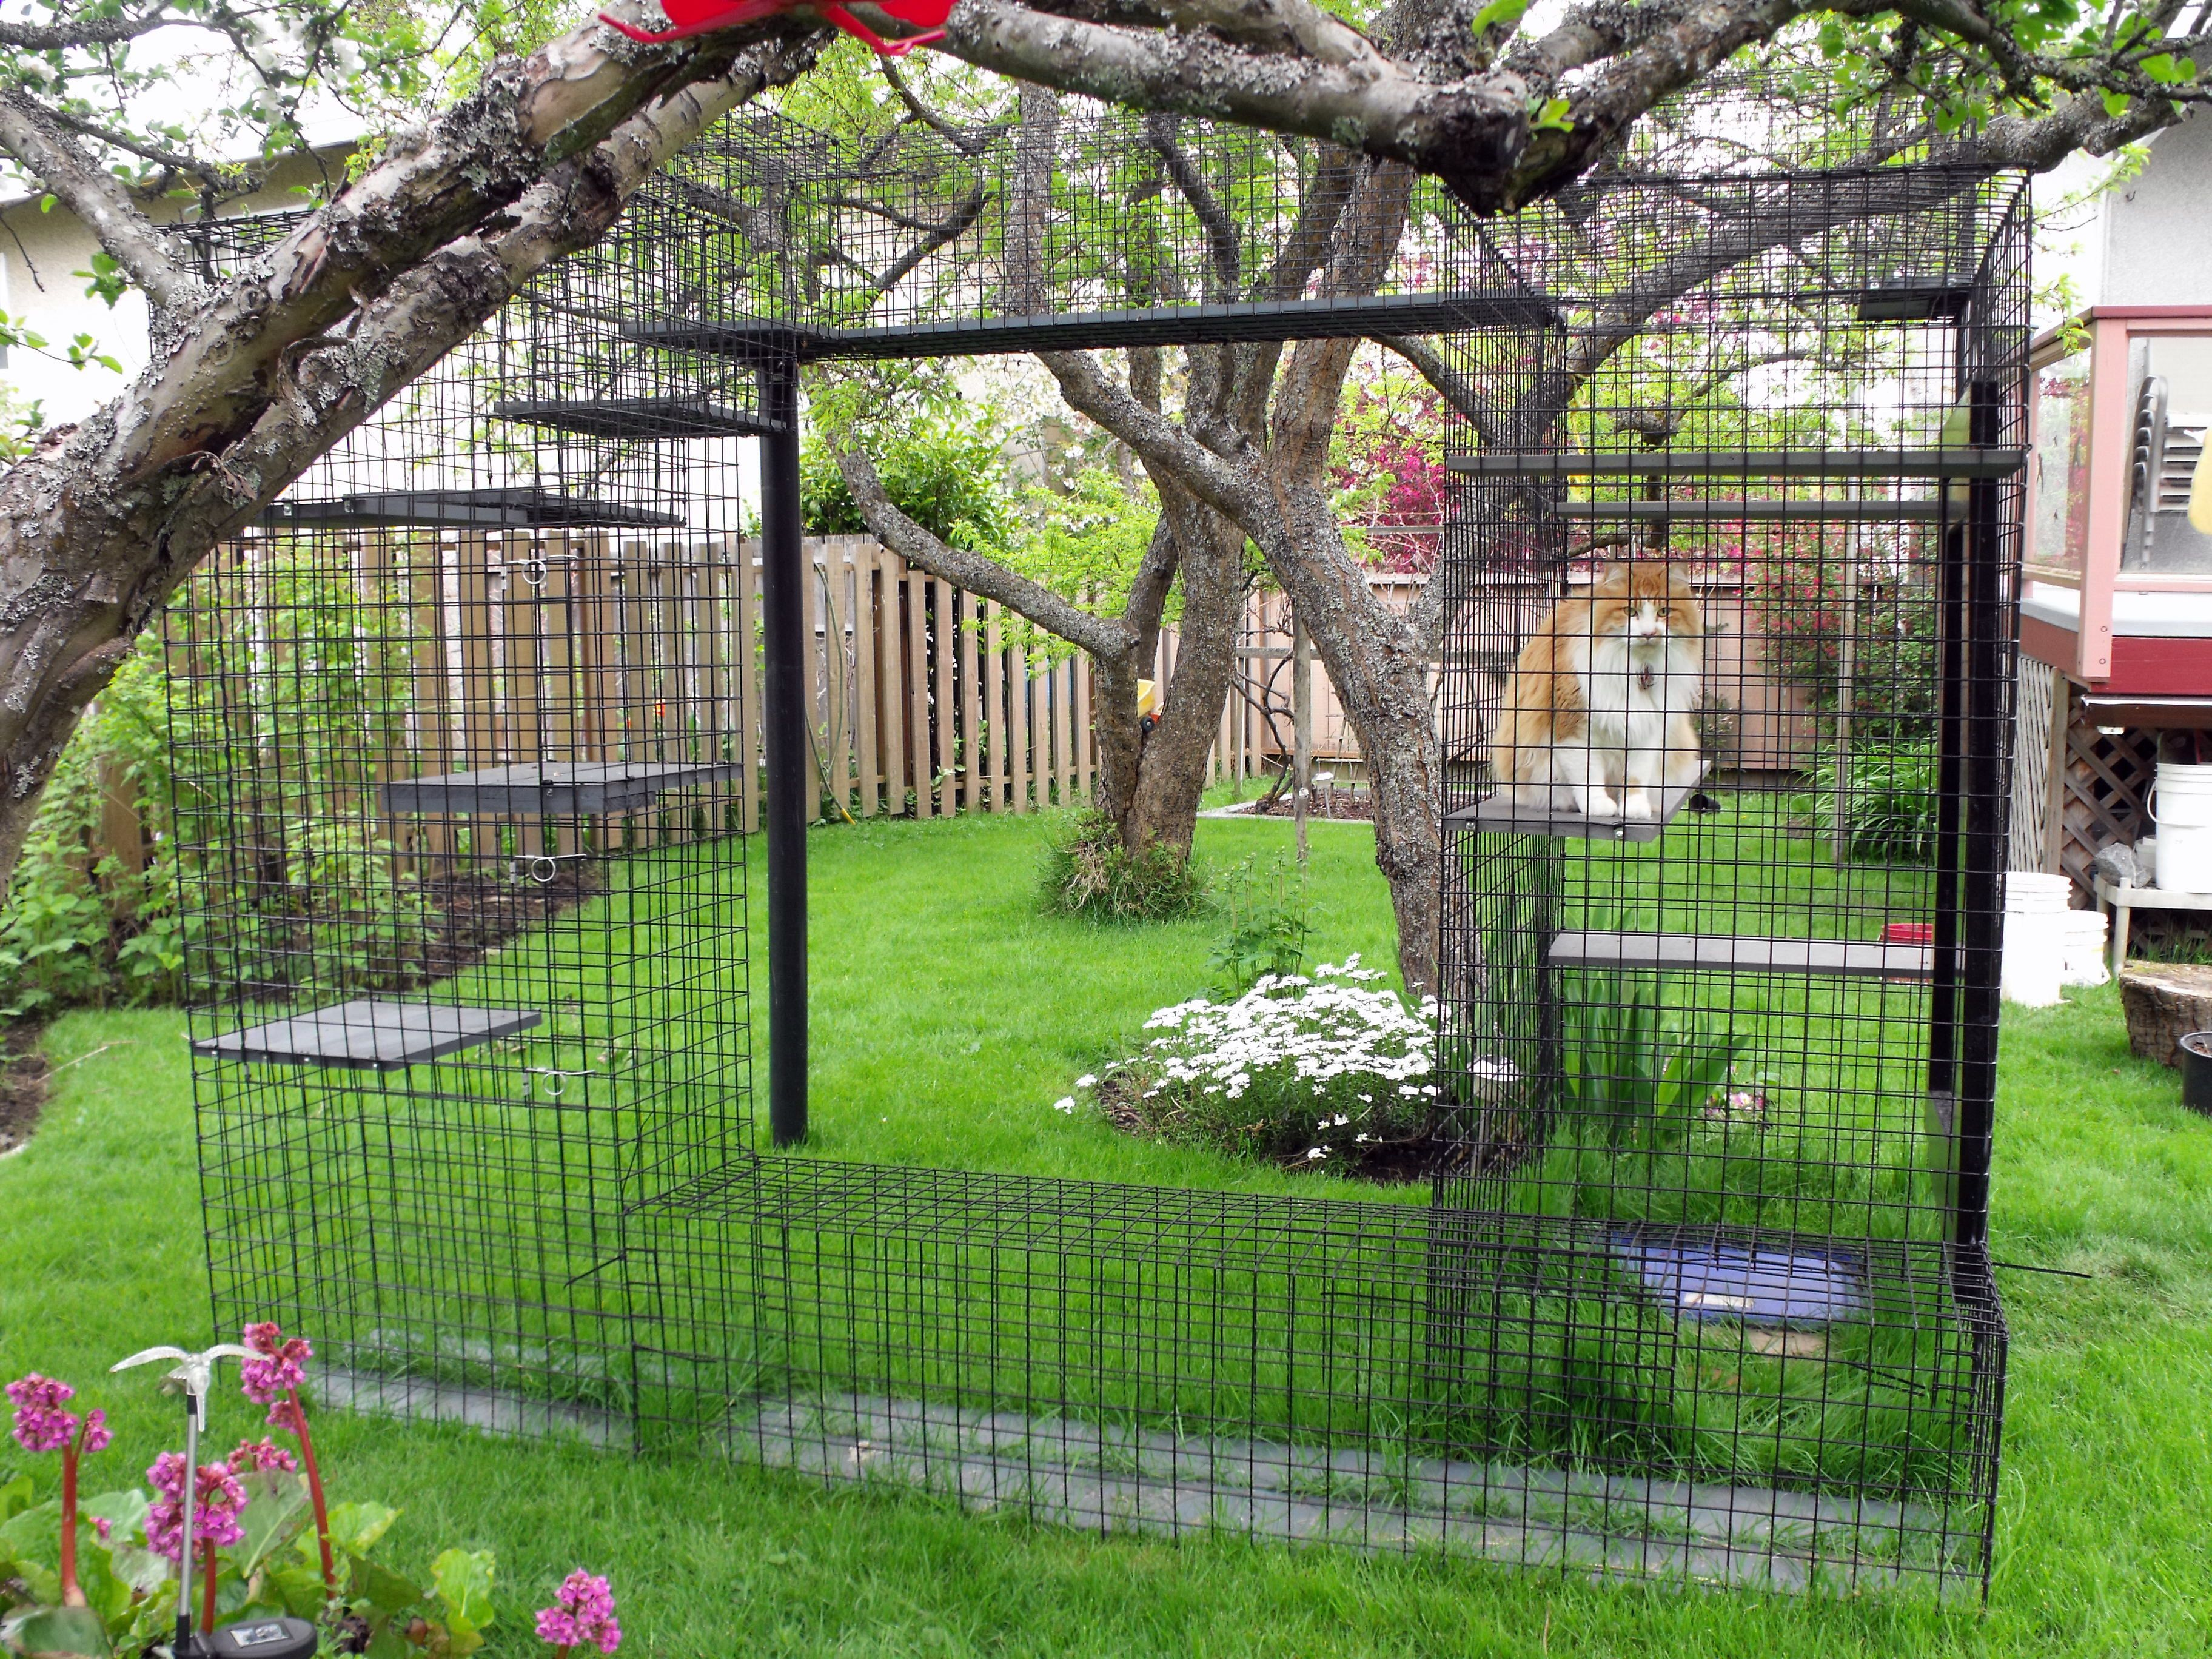 Outdoor cat enclosure Beautiful World Living Environments .abeautifulwor. & Outdoor cat enclosure Beautiful World Living Environments www ...